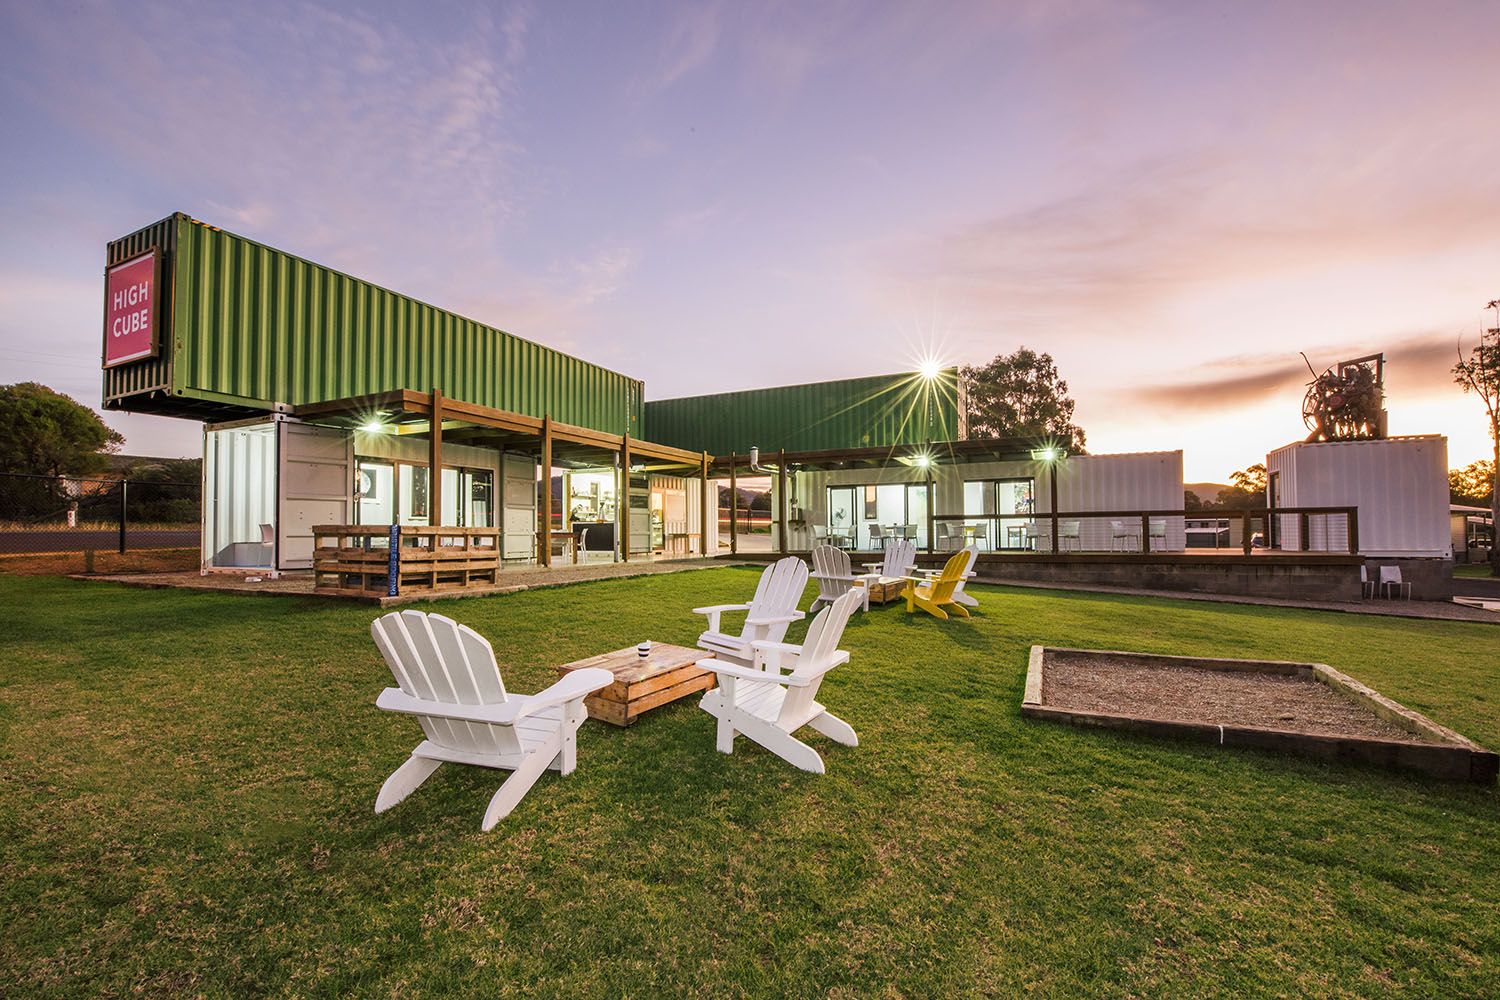 High Cube Cafe - Mudgee, NSW